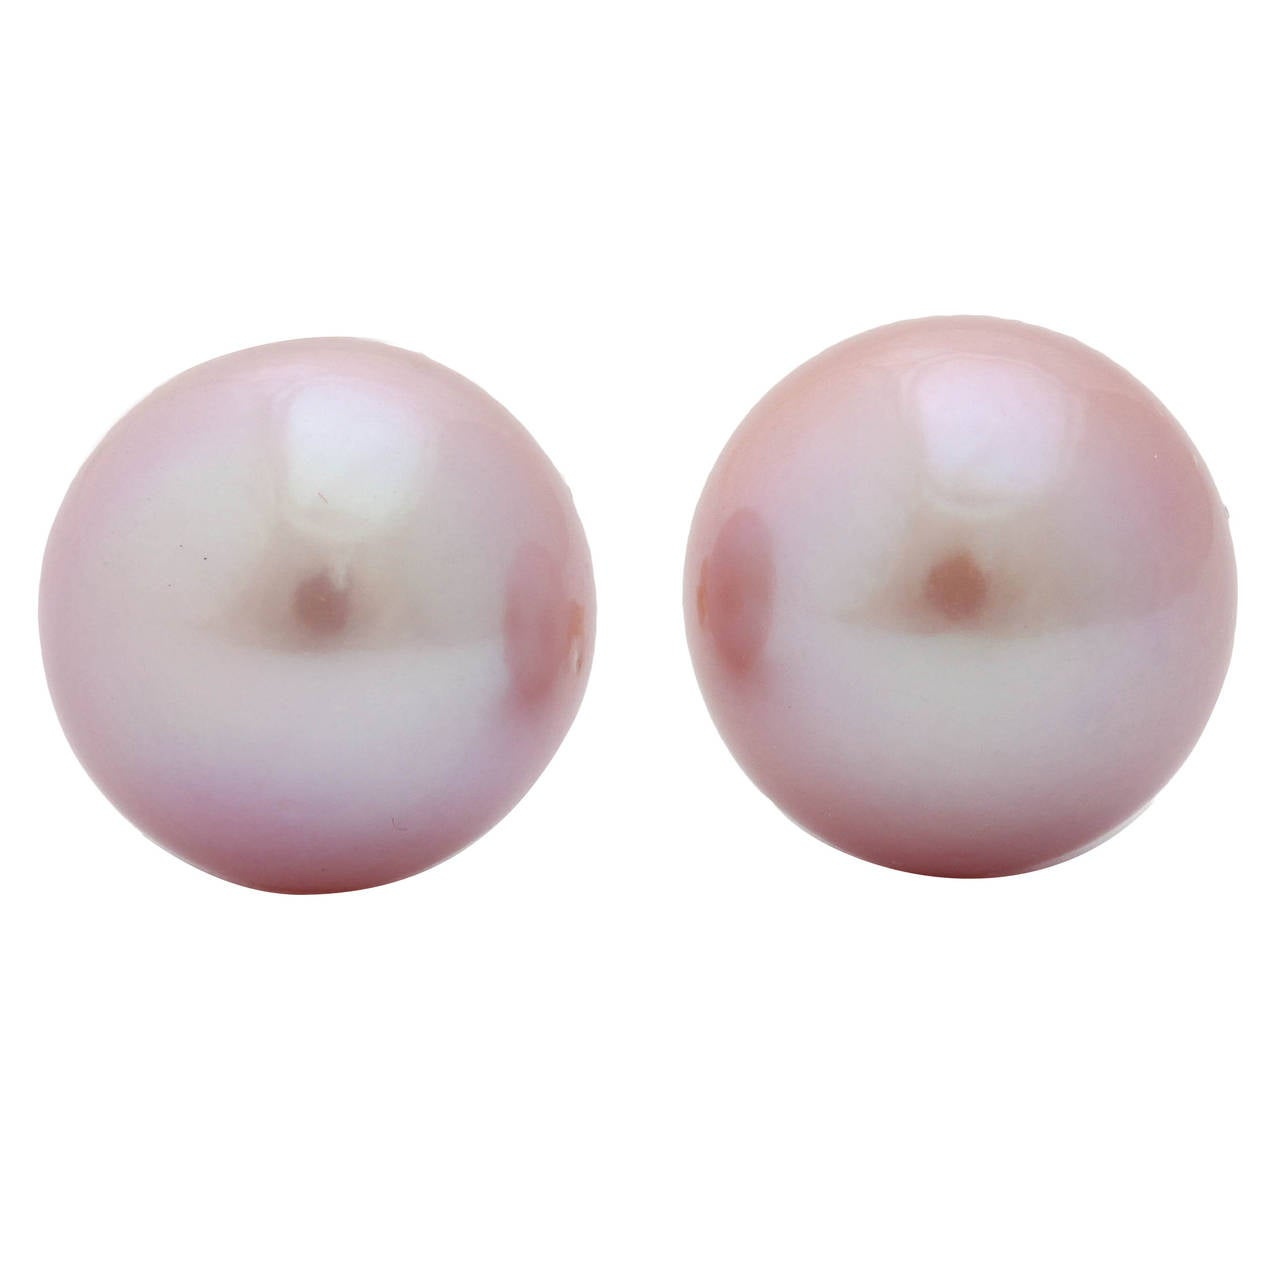 Superb Pink Pearl Earring Studs 1